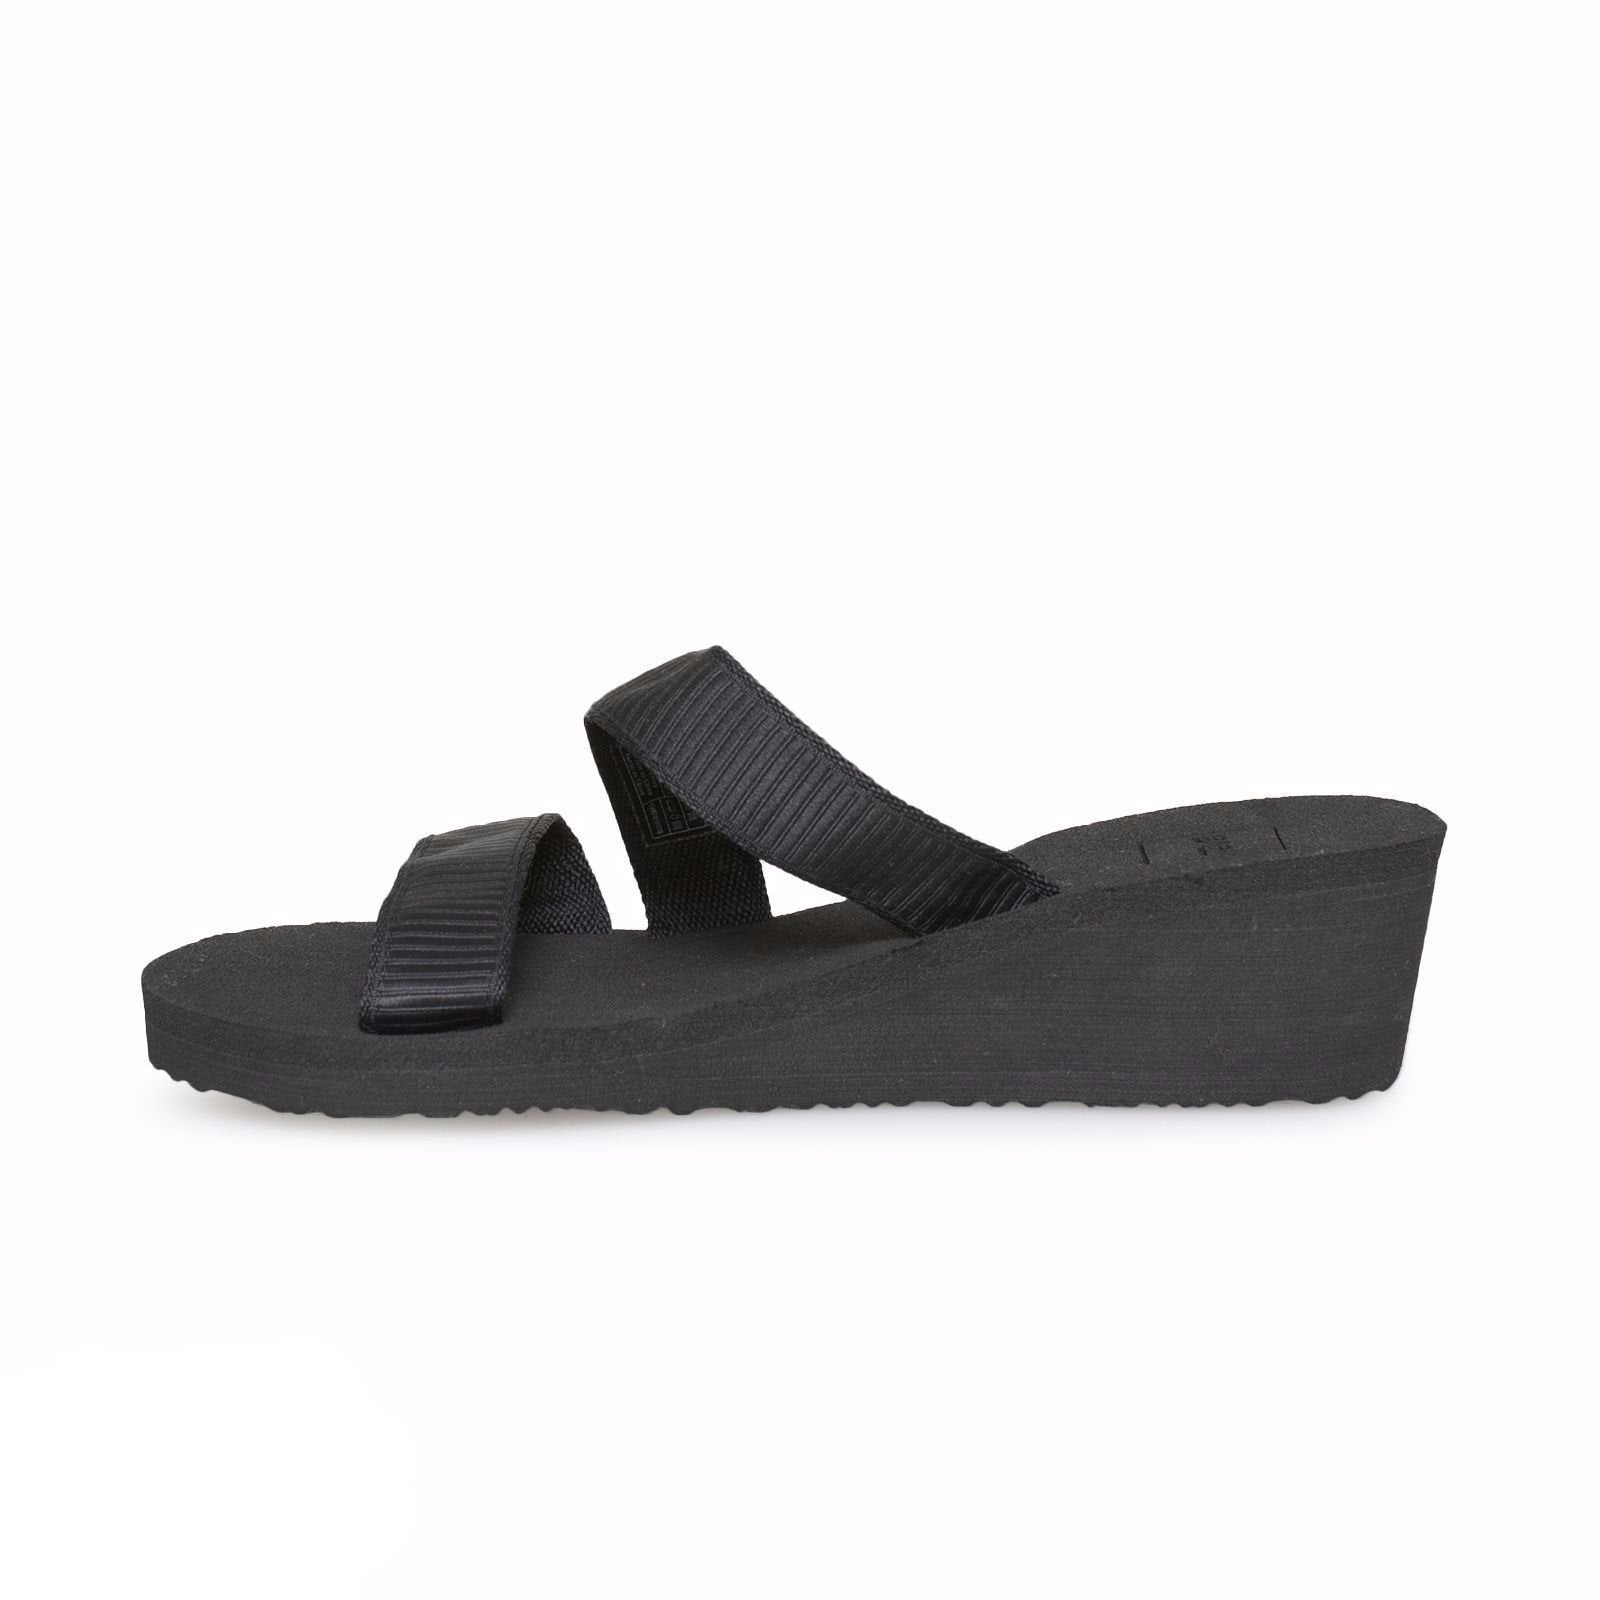 4f88747f7e7c Teva Mush Mandalyn Wedge Loma Livy Black Sandals - MyCozyBoots